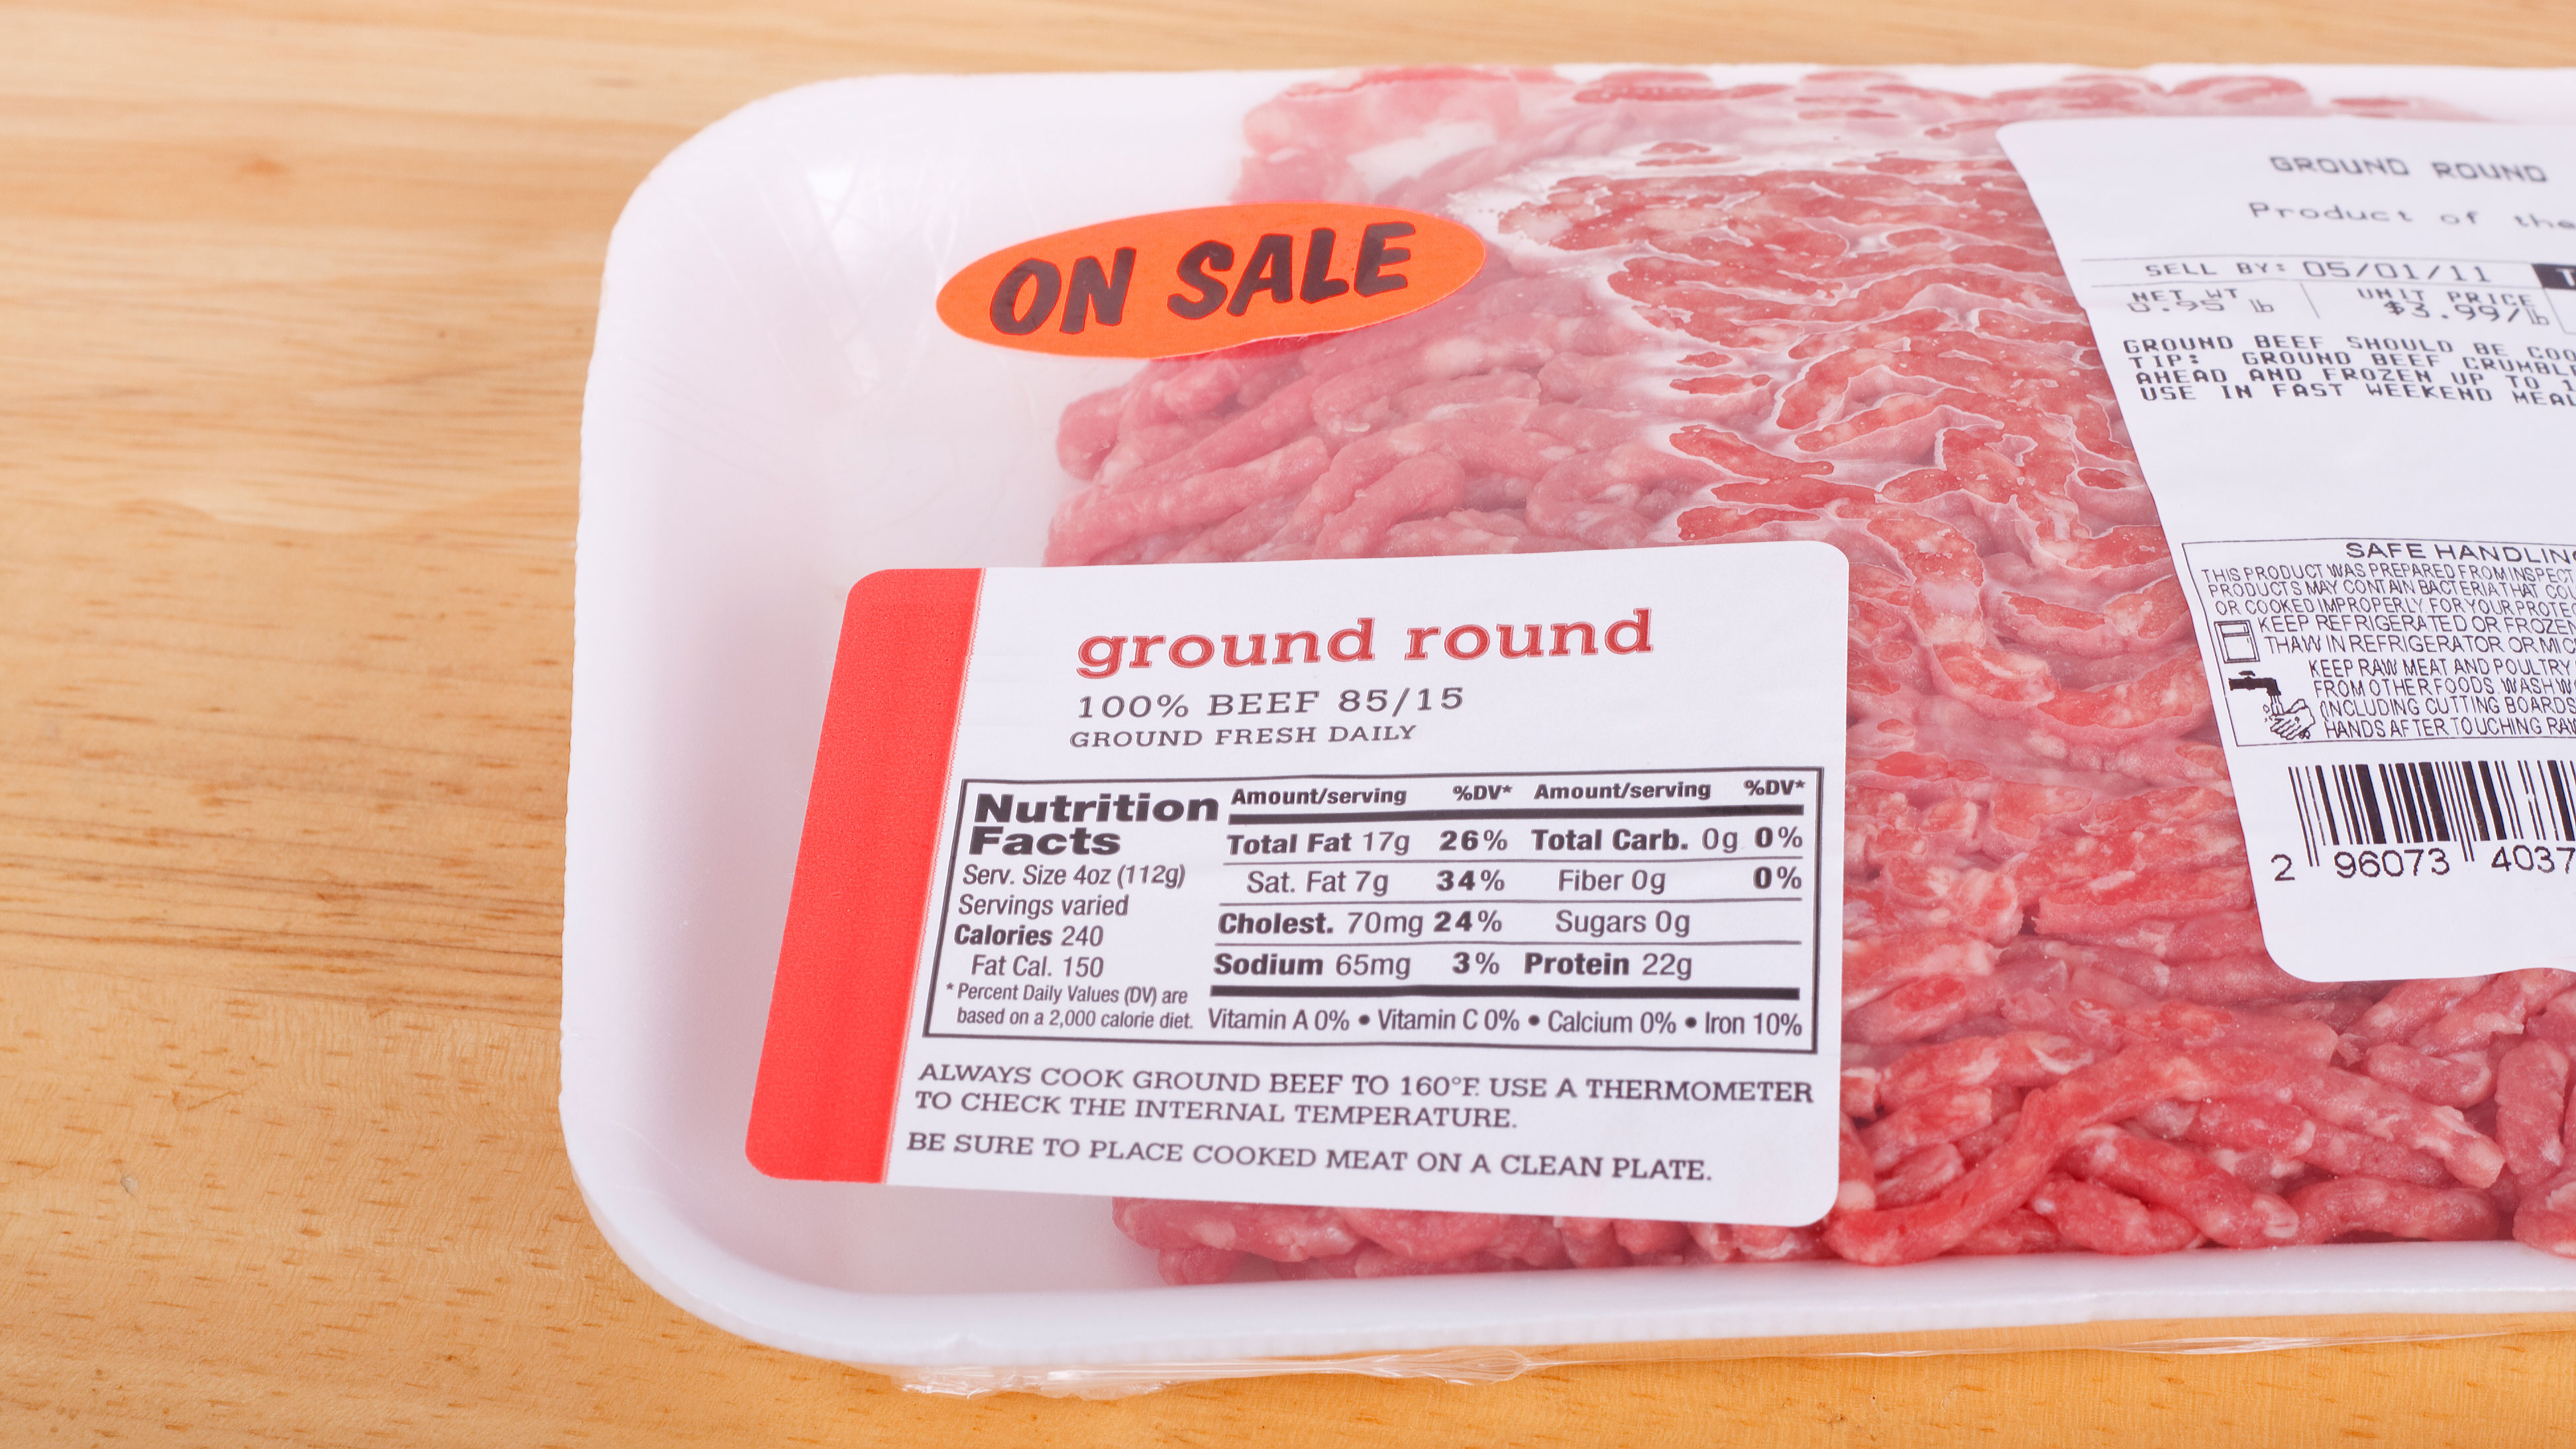 Advancing Meat and Poultry Safety